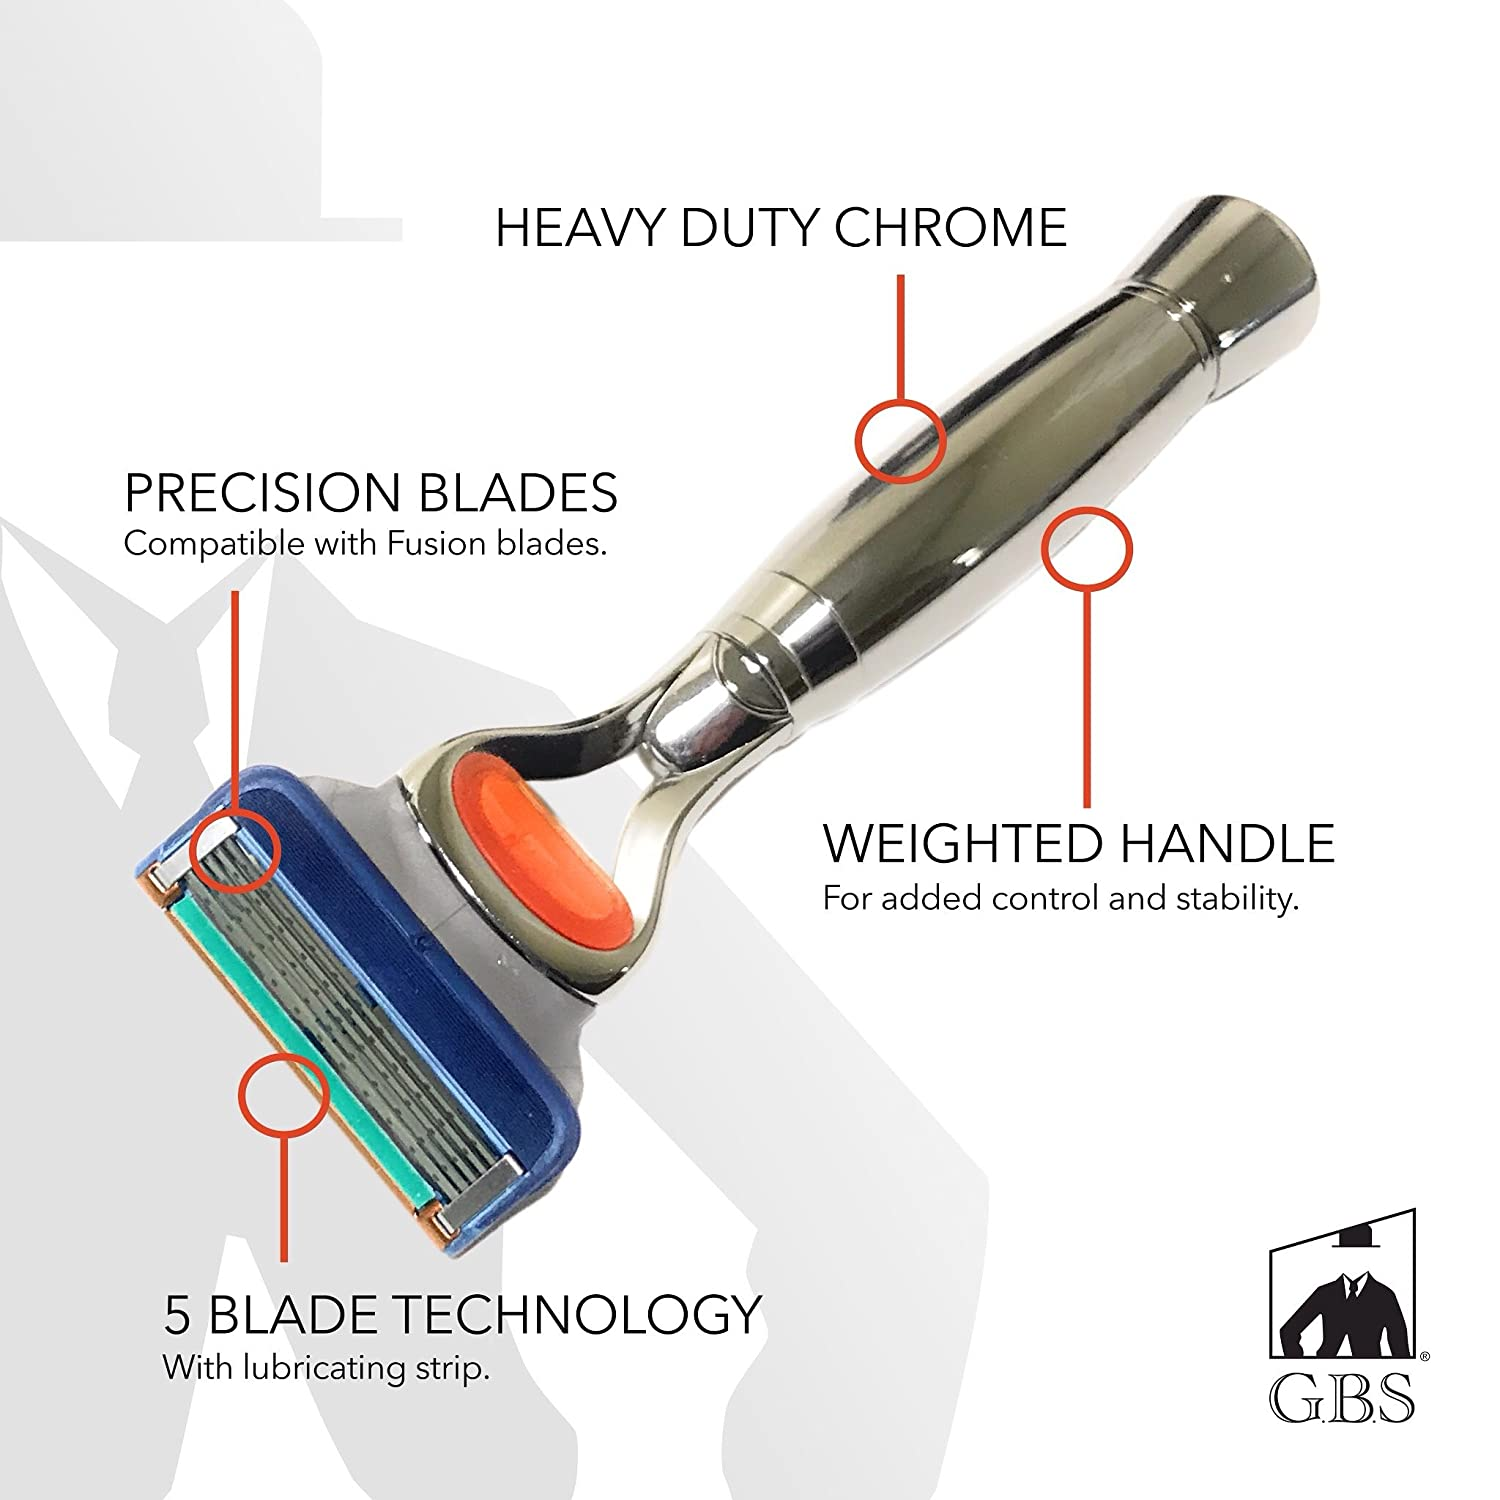 GBS Men's Heavy Duty Handle Chrome Shaving Razor - 5 Blade technology